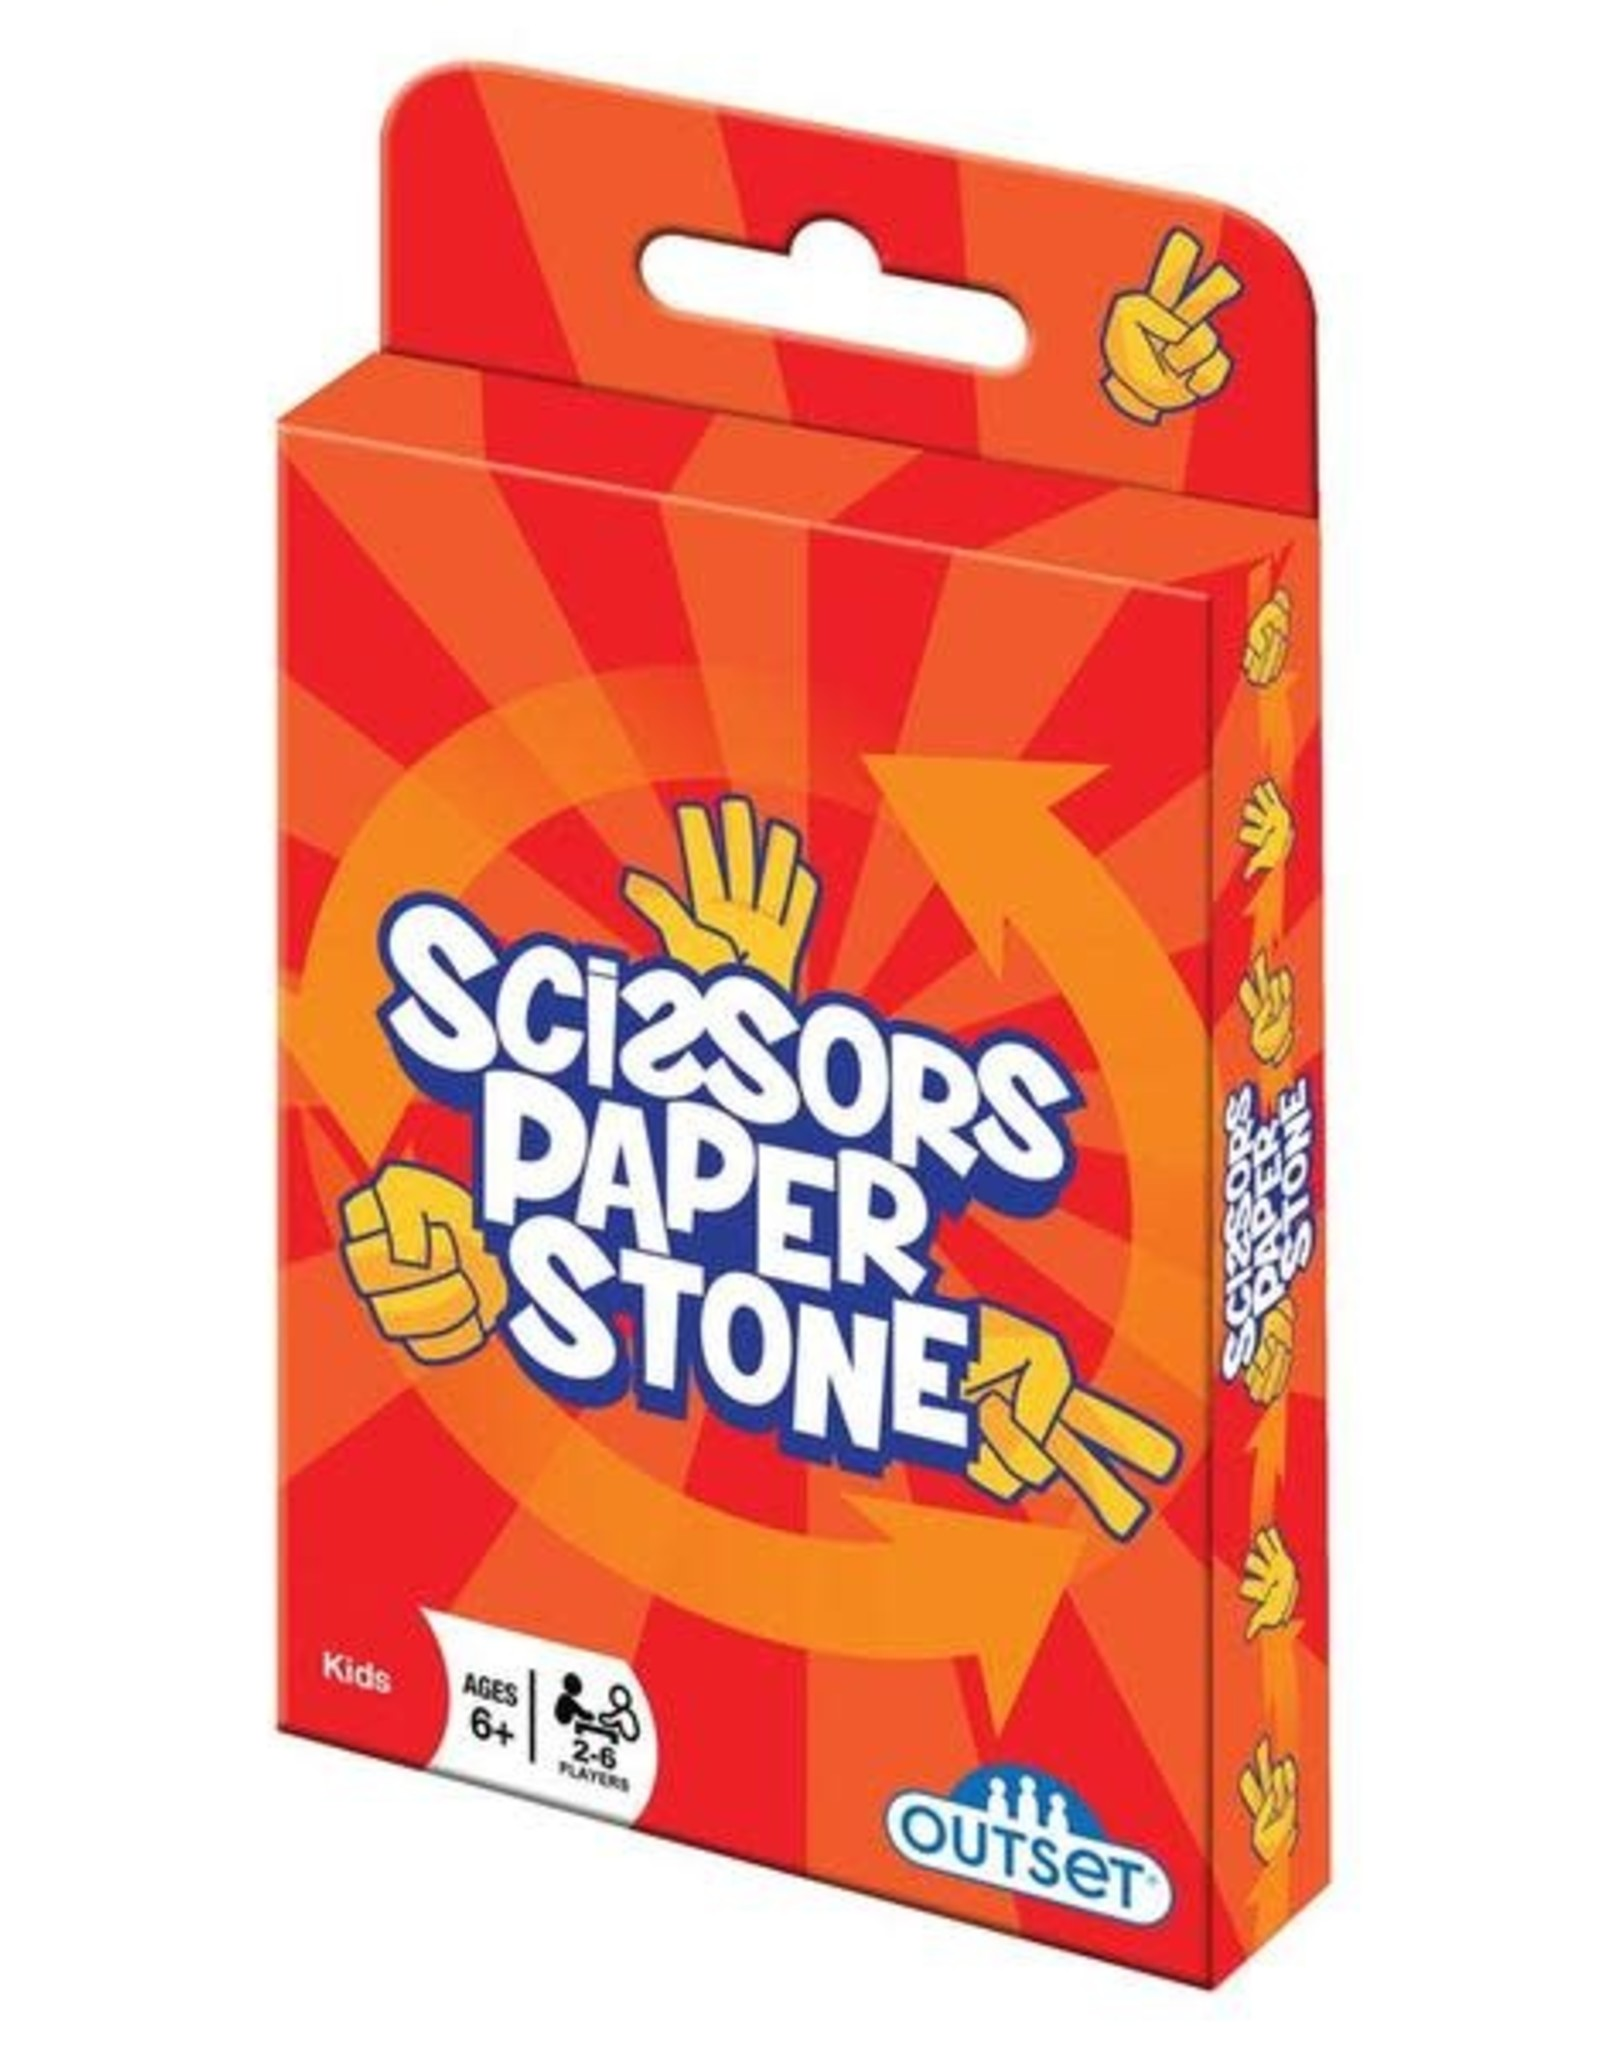 Outset Media Scissors Paper Stone Card Game